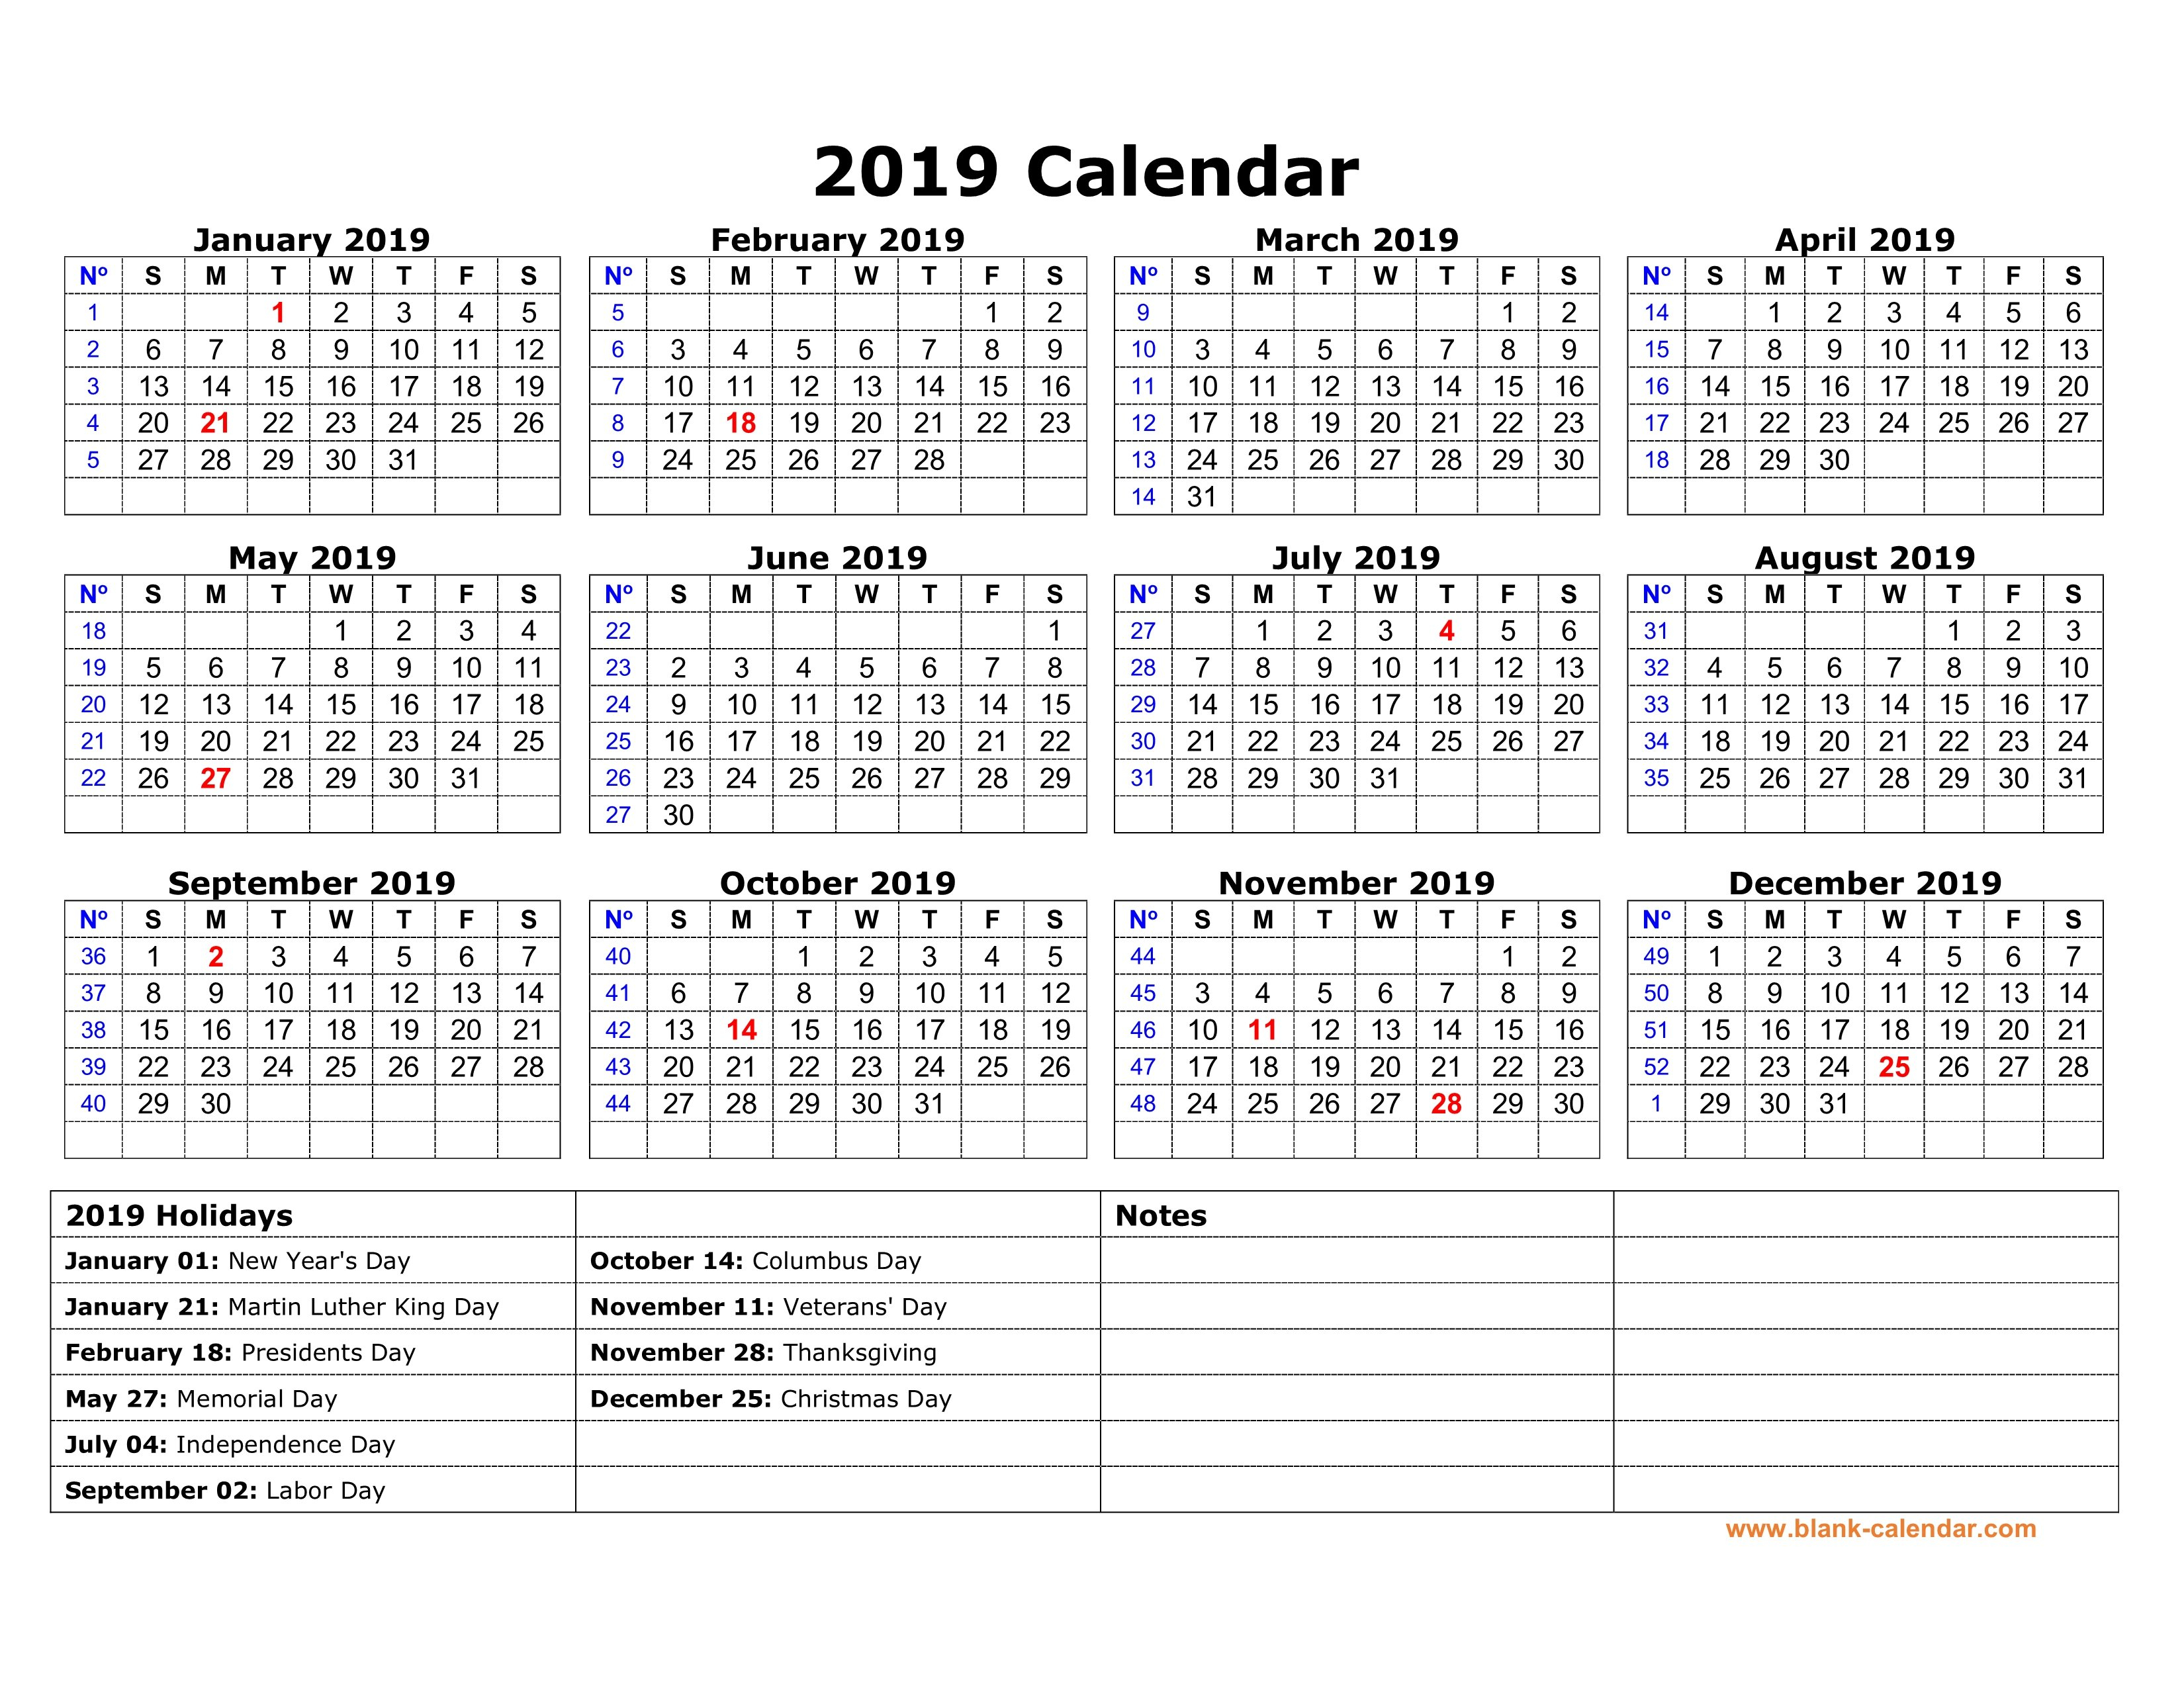 Free Download Printable Calendar 2019 With Us Federal Holidays, One Calendar 2019 With Holidays Printable